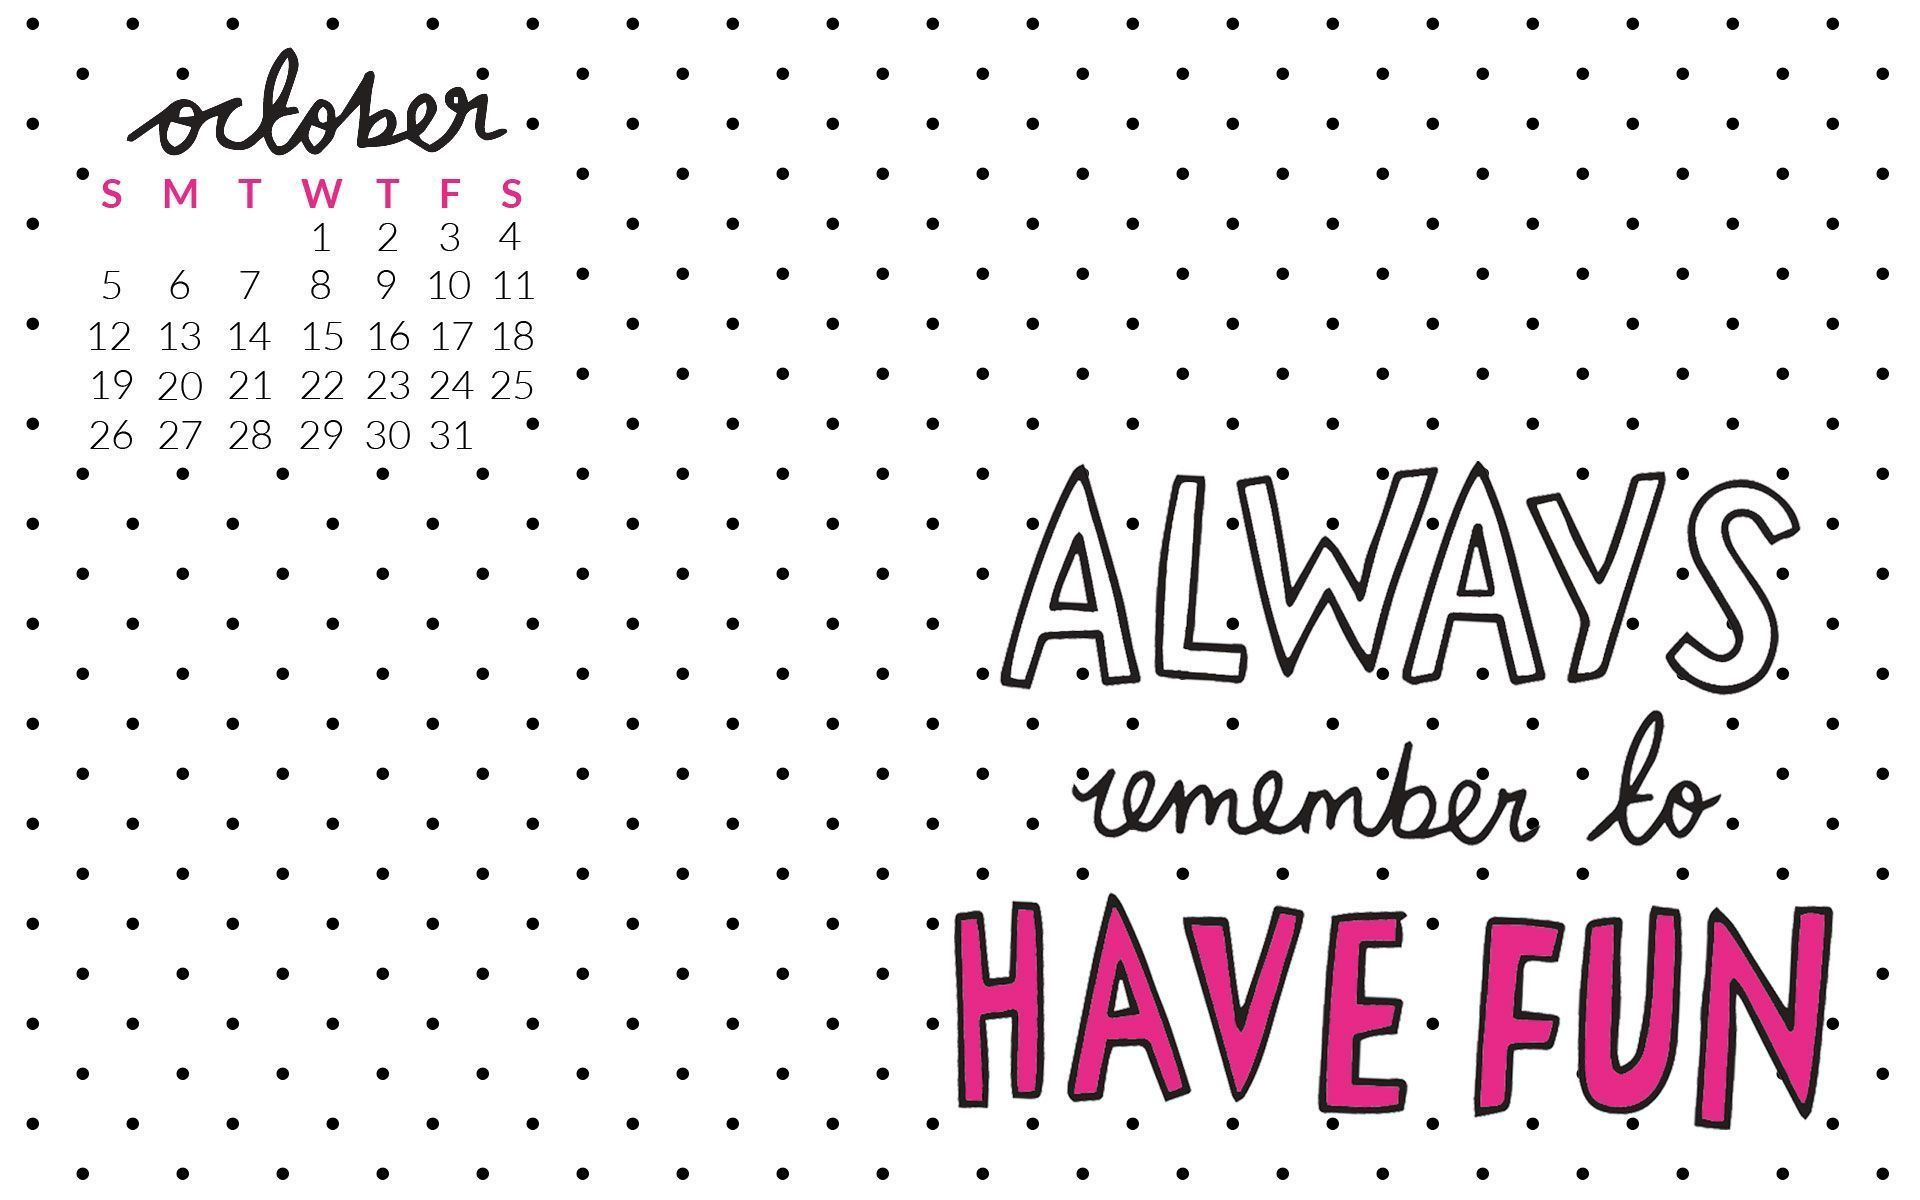 Free desktop wallpaper October calendar 2 | Mollie Makes #octoberwallpaper Free desktop wallpaper October calendar 2 | Mollie Makes #hellonovemberwallpaper Free desktop wallpaper October calendar 2 | Mollie Makes #octoberwallpaper Free desktop wallpaper October calendar 2 | Mollie Makes #hellonovembermonth Free desktop wallpaper October calendar 2 | Mollie Makes #octoberwallpaper Free desktop wallpaper October calendar 2 | Mollie Makes #hellonovemberwallpaper Free desktop wallpaper October calen #octoberwallpaper